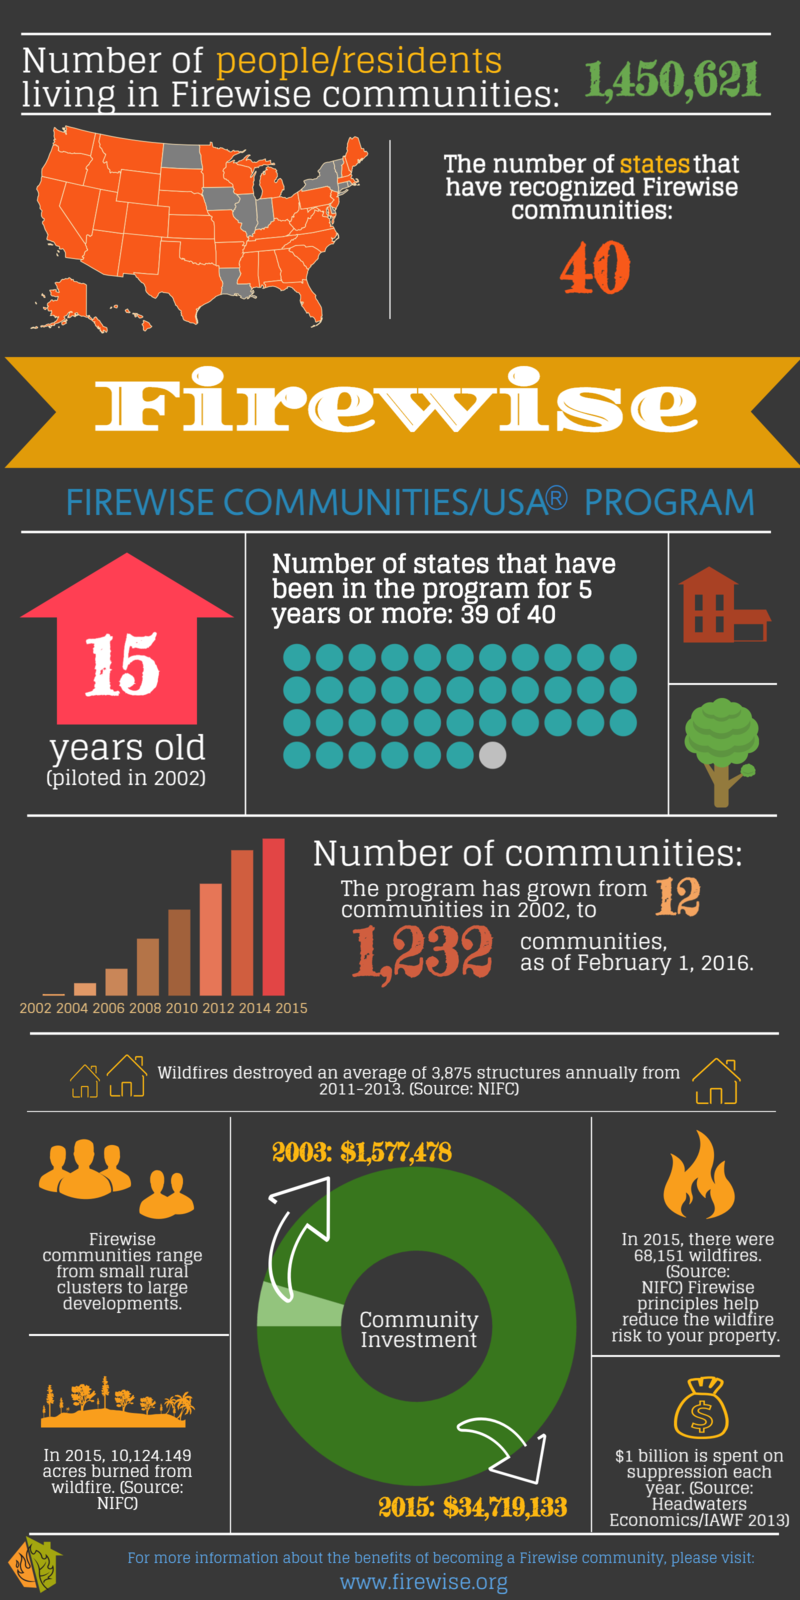 Firewise Overview 2015 - 2016 Infographic